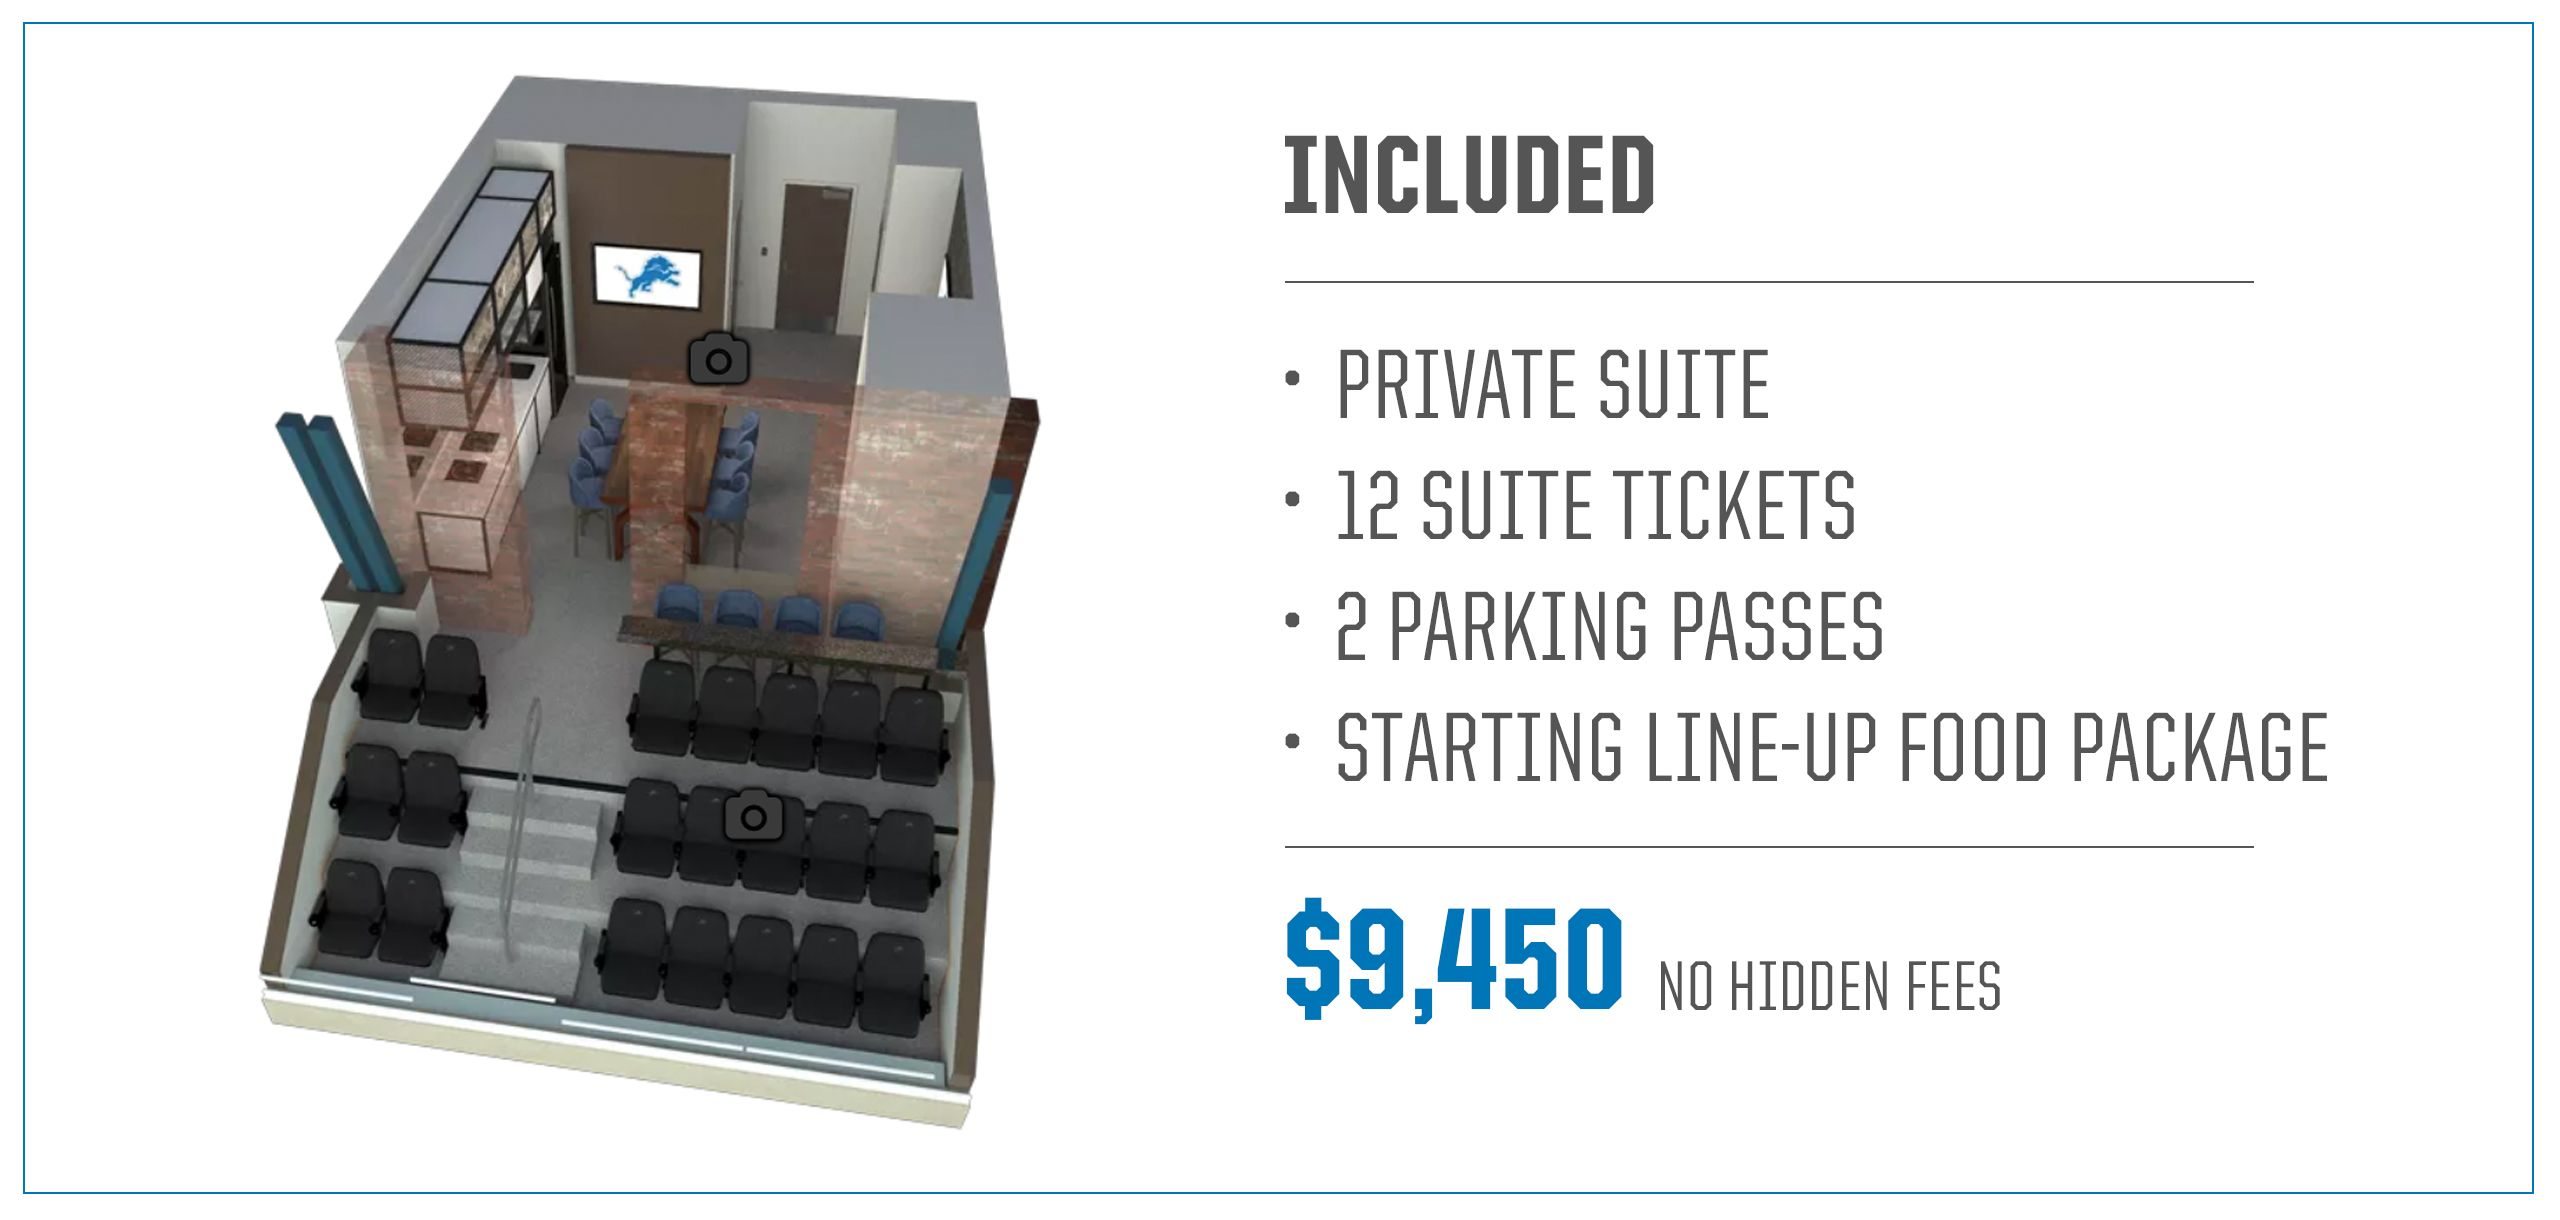 suite-purchase-information-packers-vs-lions